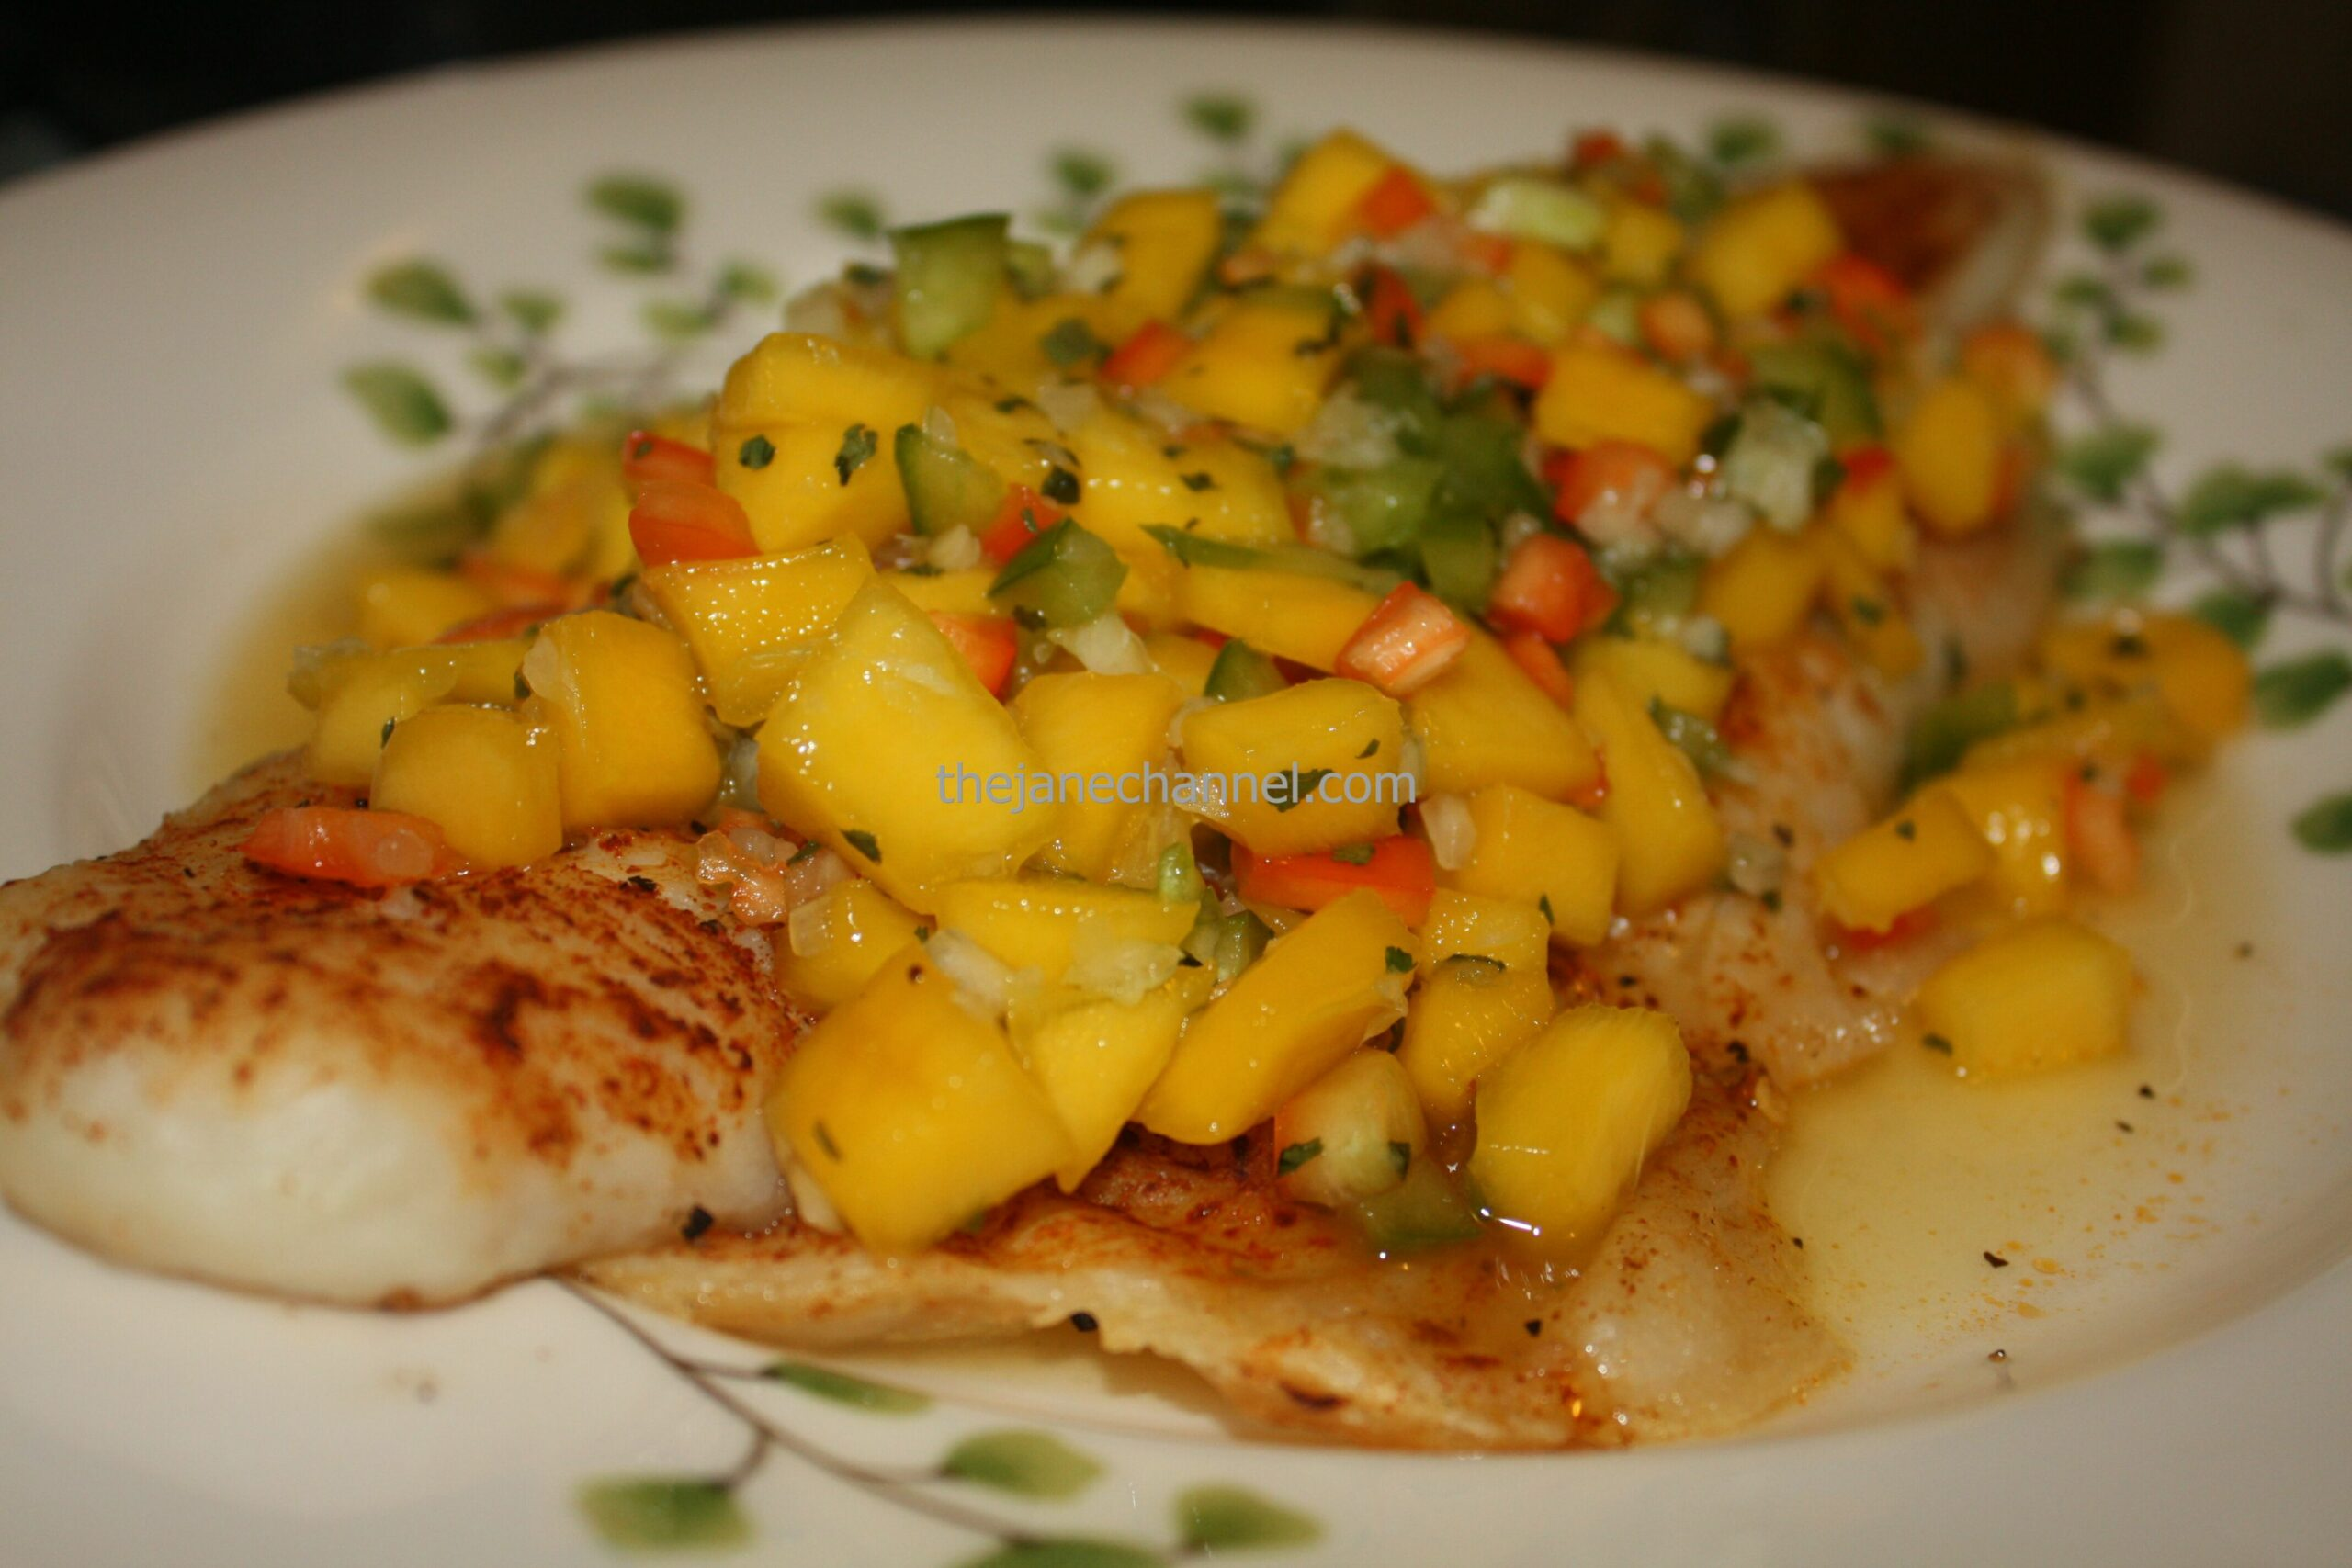 Baked Grouper Fillet with Mango Salsa | thejanechannel - Recipe Fish With Mango Salsa